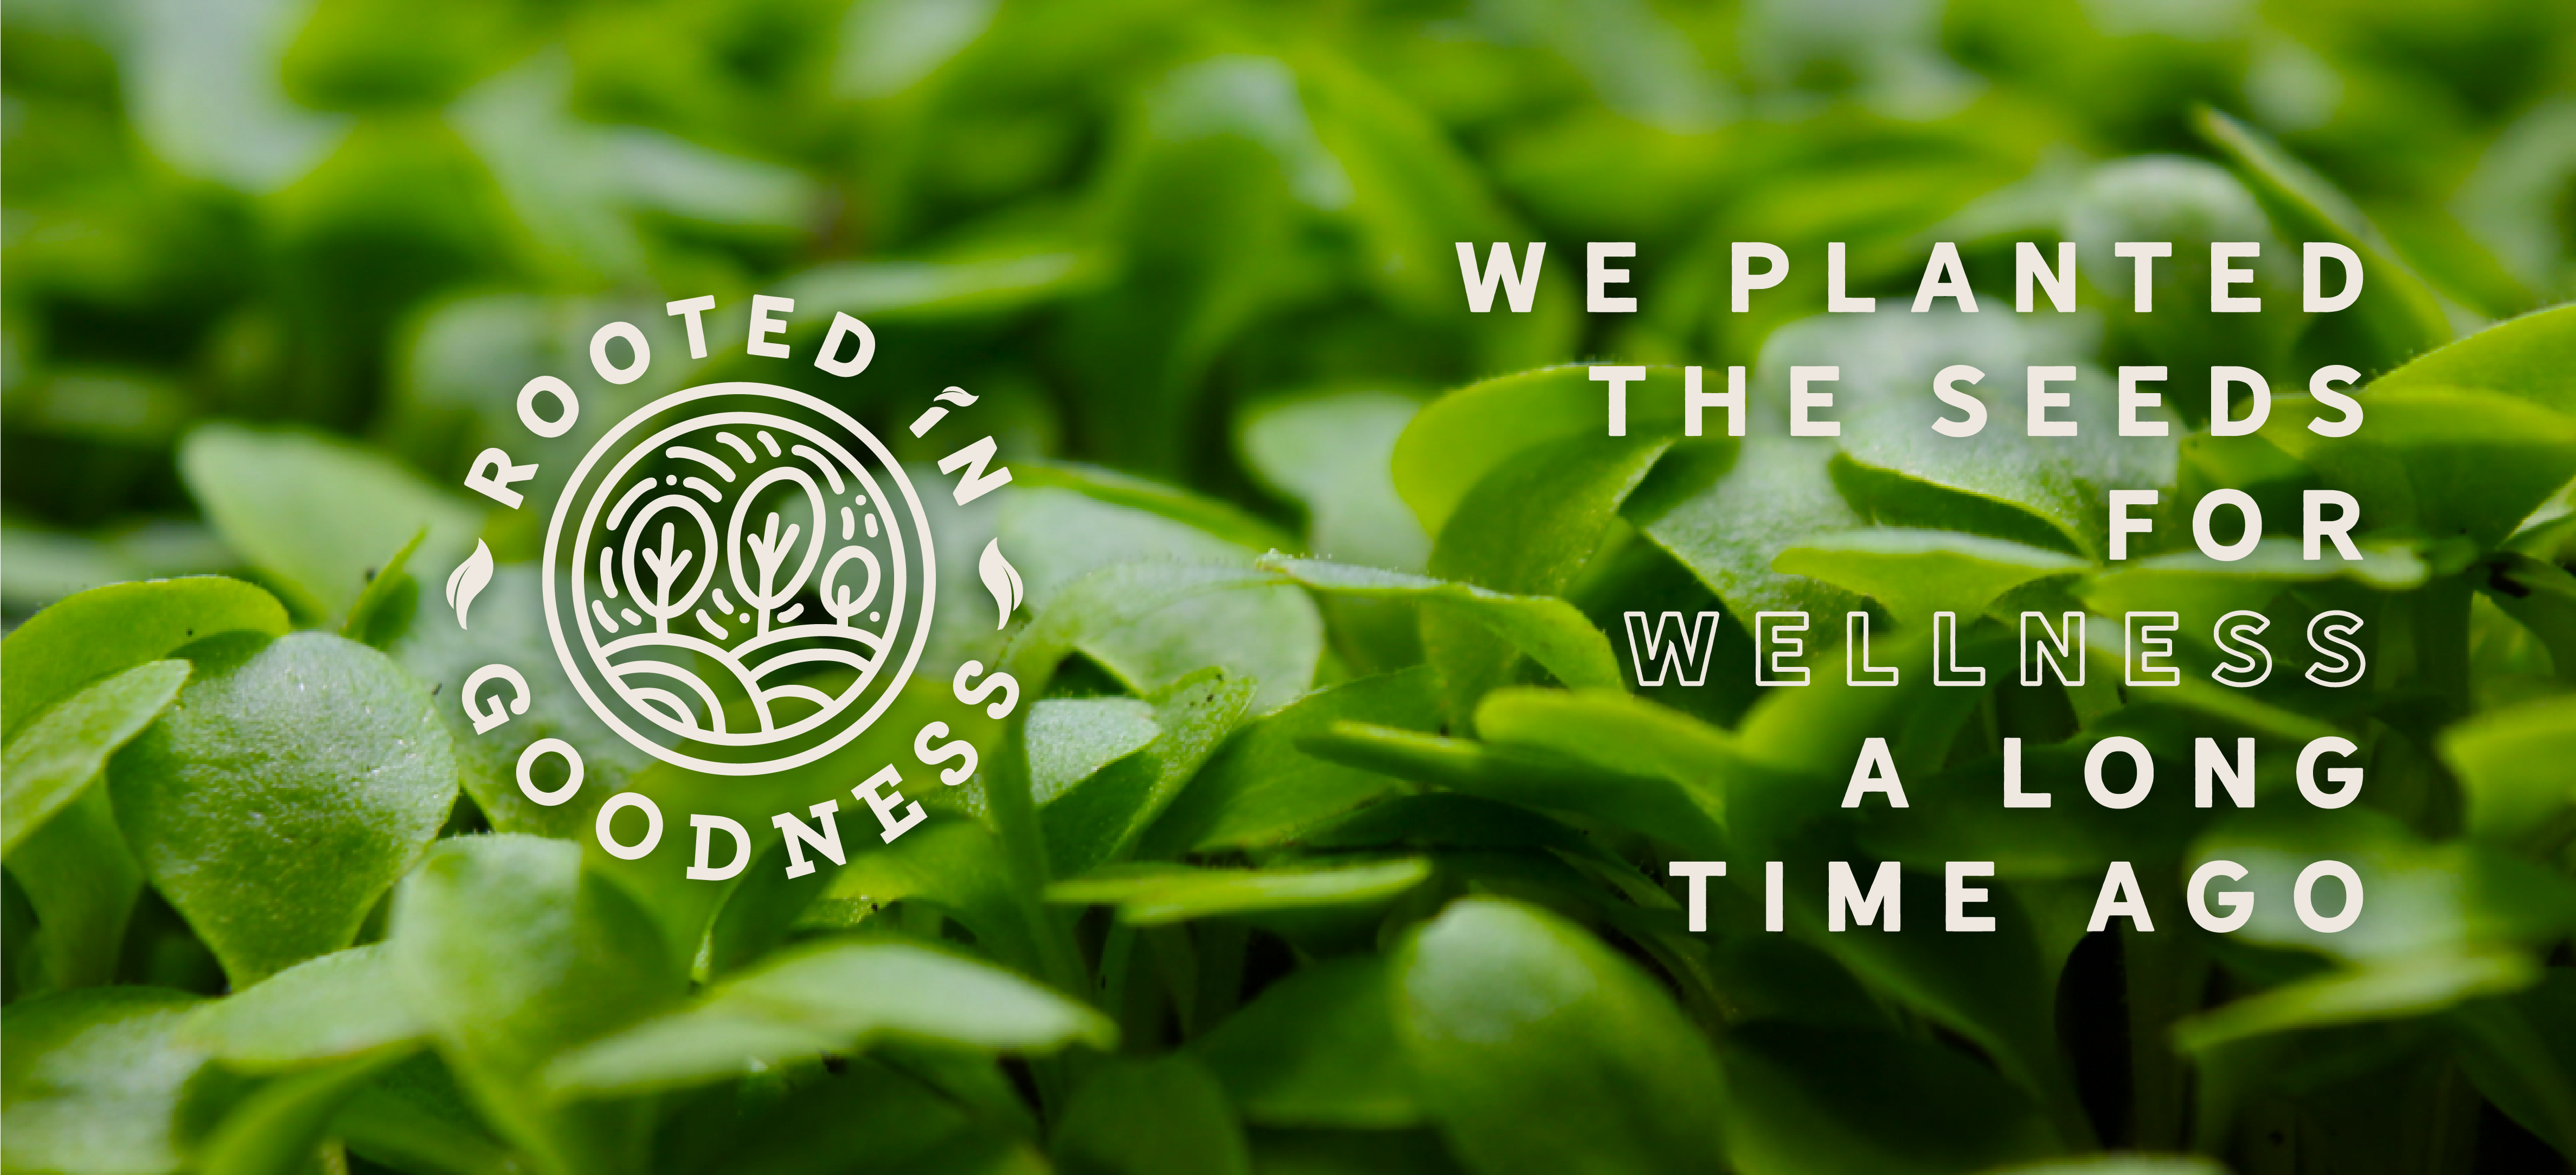 Rooted in Goodness. We planted the seeds for wellness a long time ago.